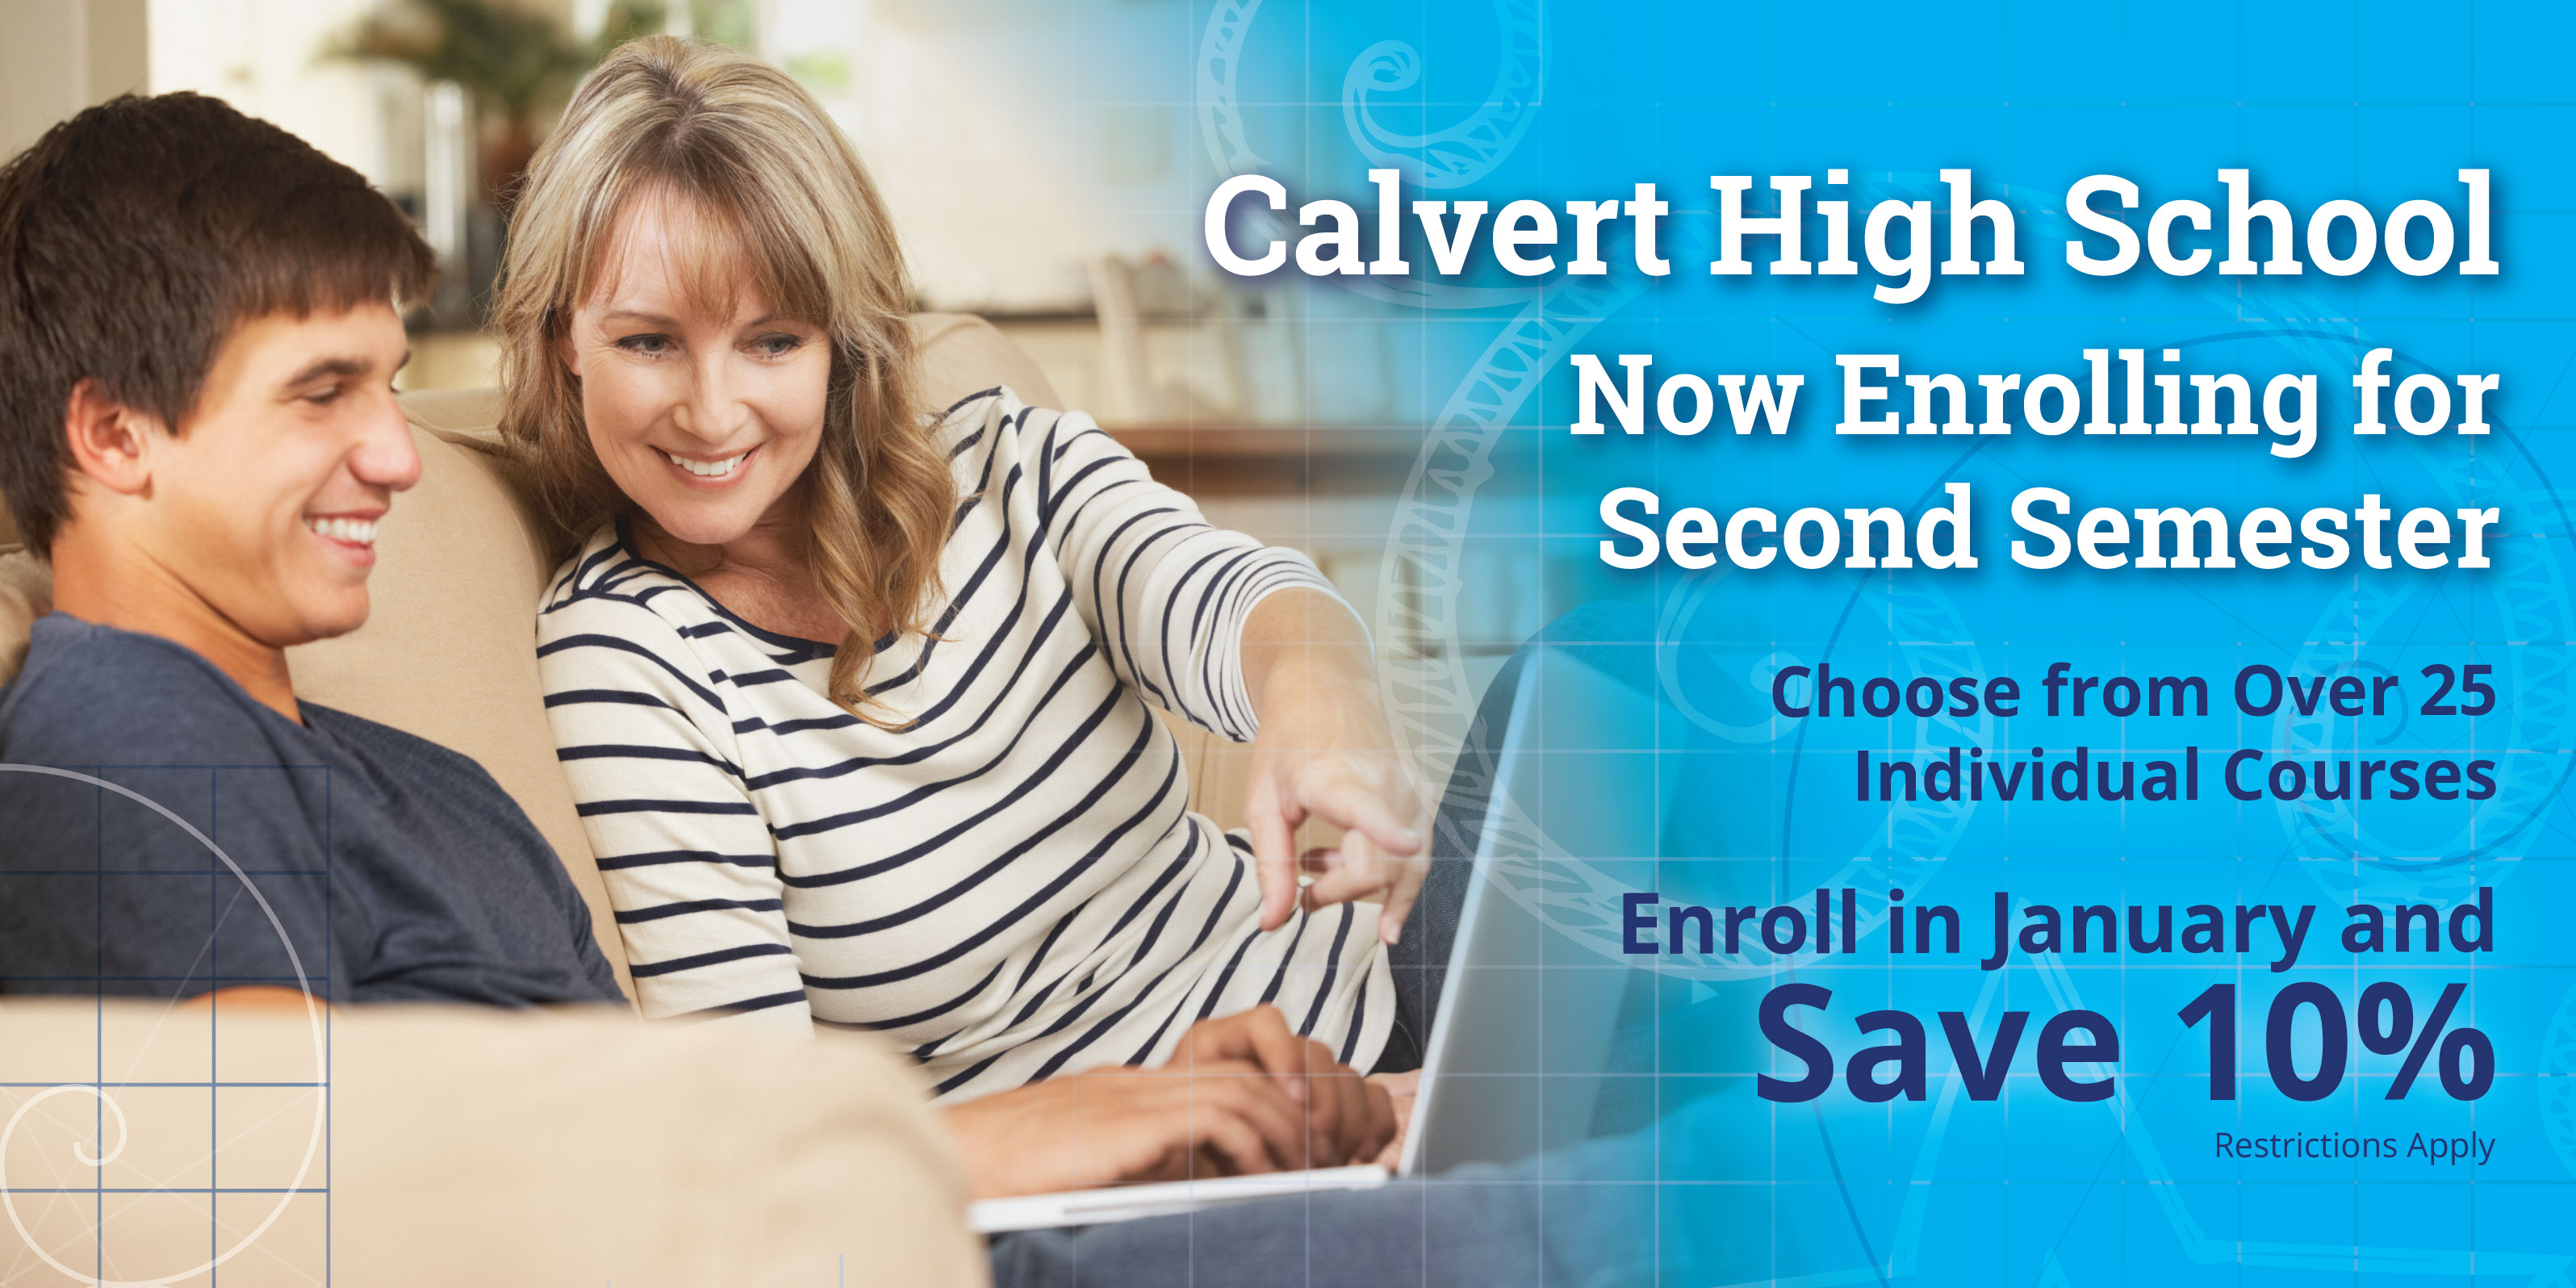 Calvert High School Now Enrolling forSecond Semester  Over 25 Individual Coursesto Choose From Enroll in January and Save 10% Restrictions apply.   See Details